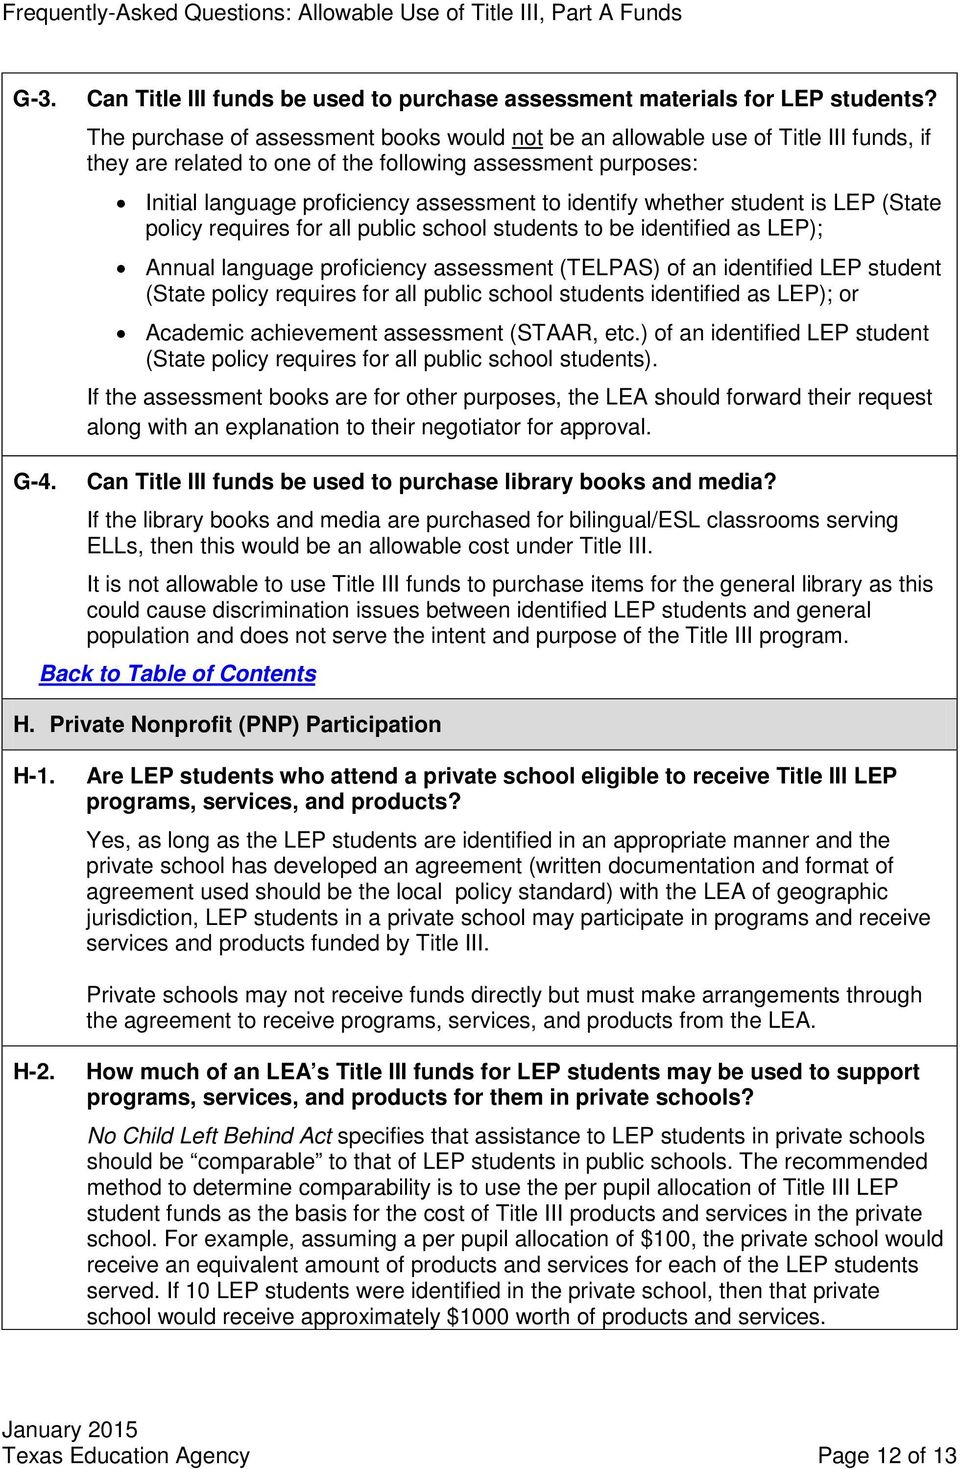 whether student is LEP (State policy requires for all public school students to be identified as LEP); Annual language proficiency assessment (TELPAS) of an identified LEP student (State policy